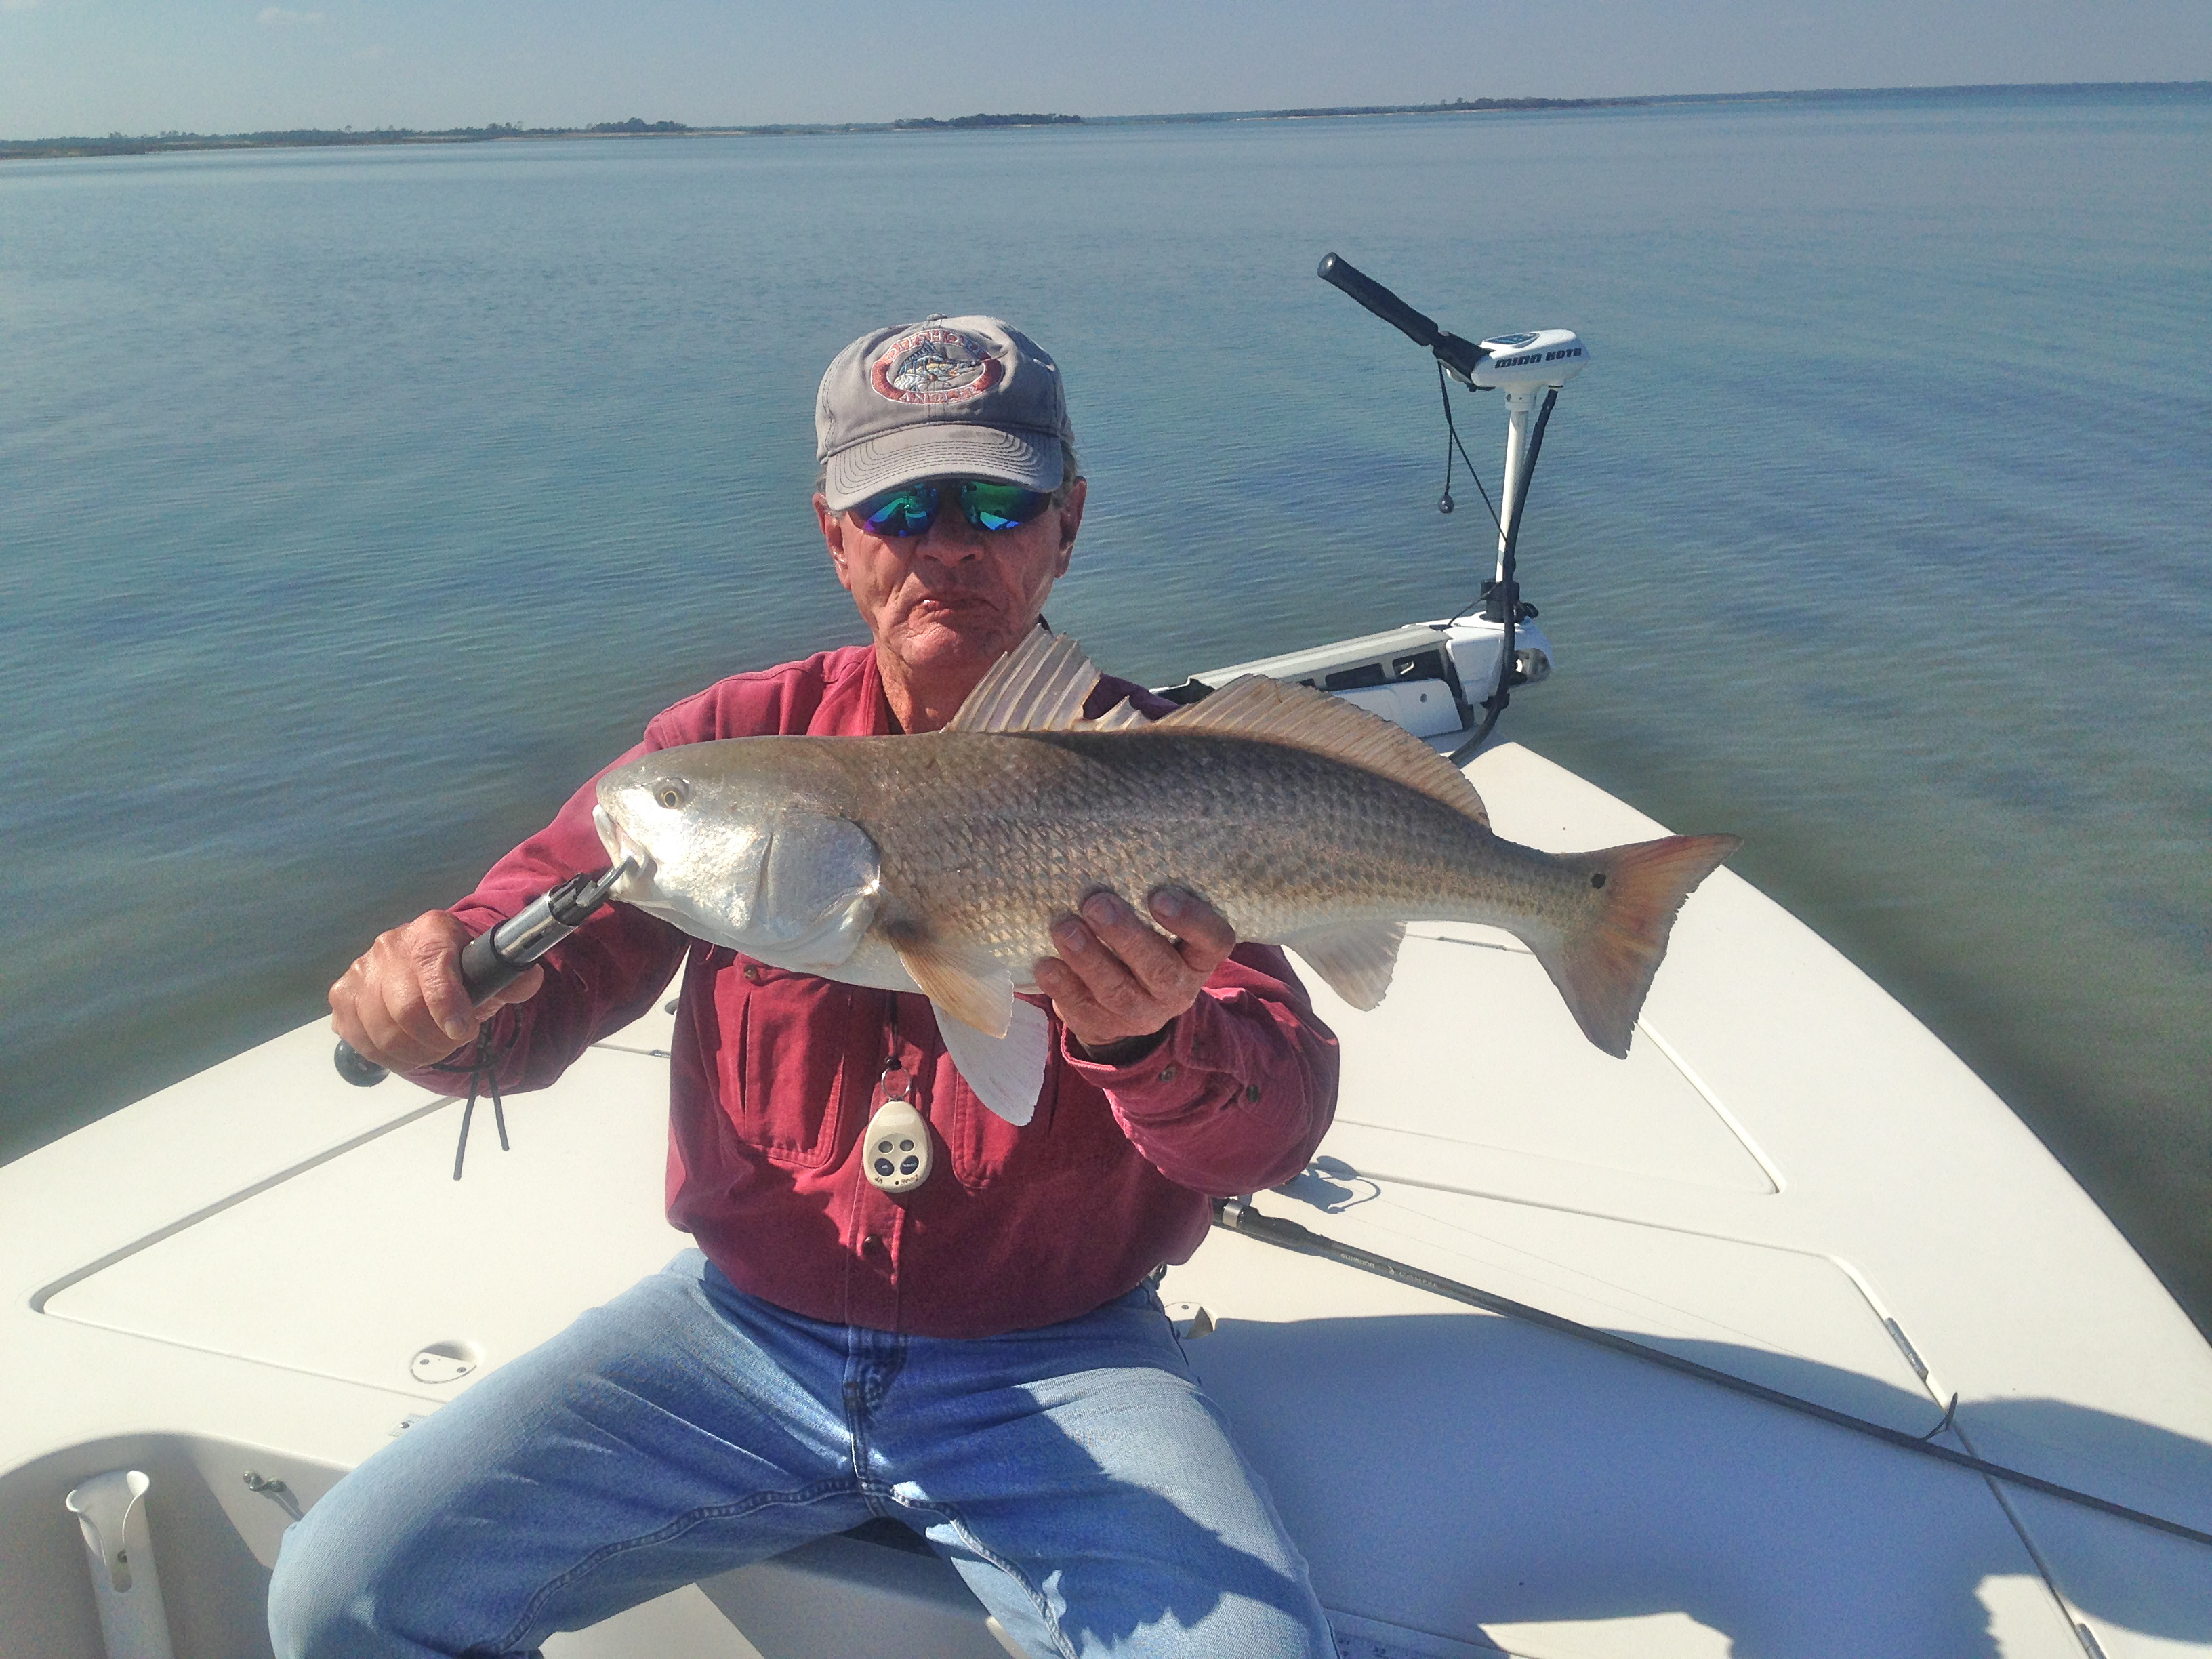 Capt.Ray showing off a nice winter red